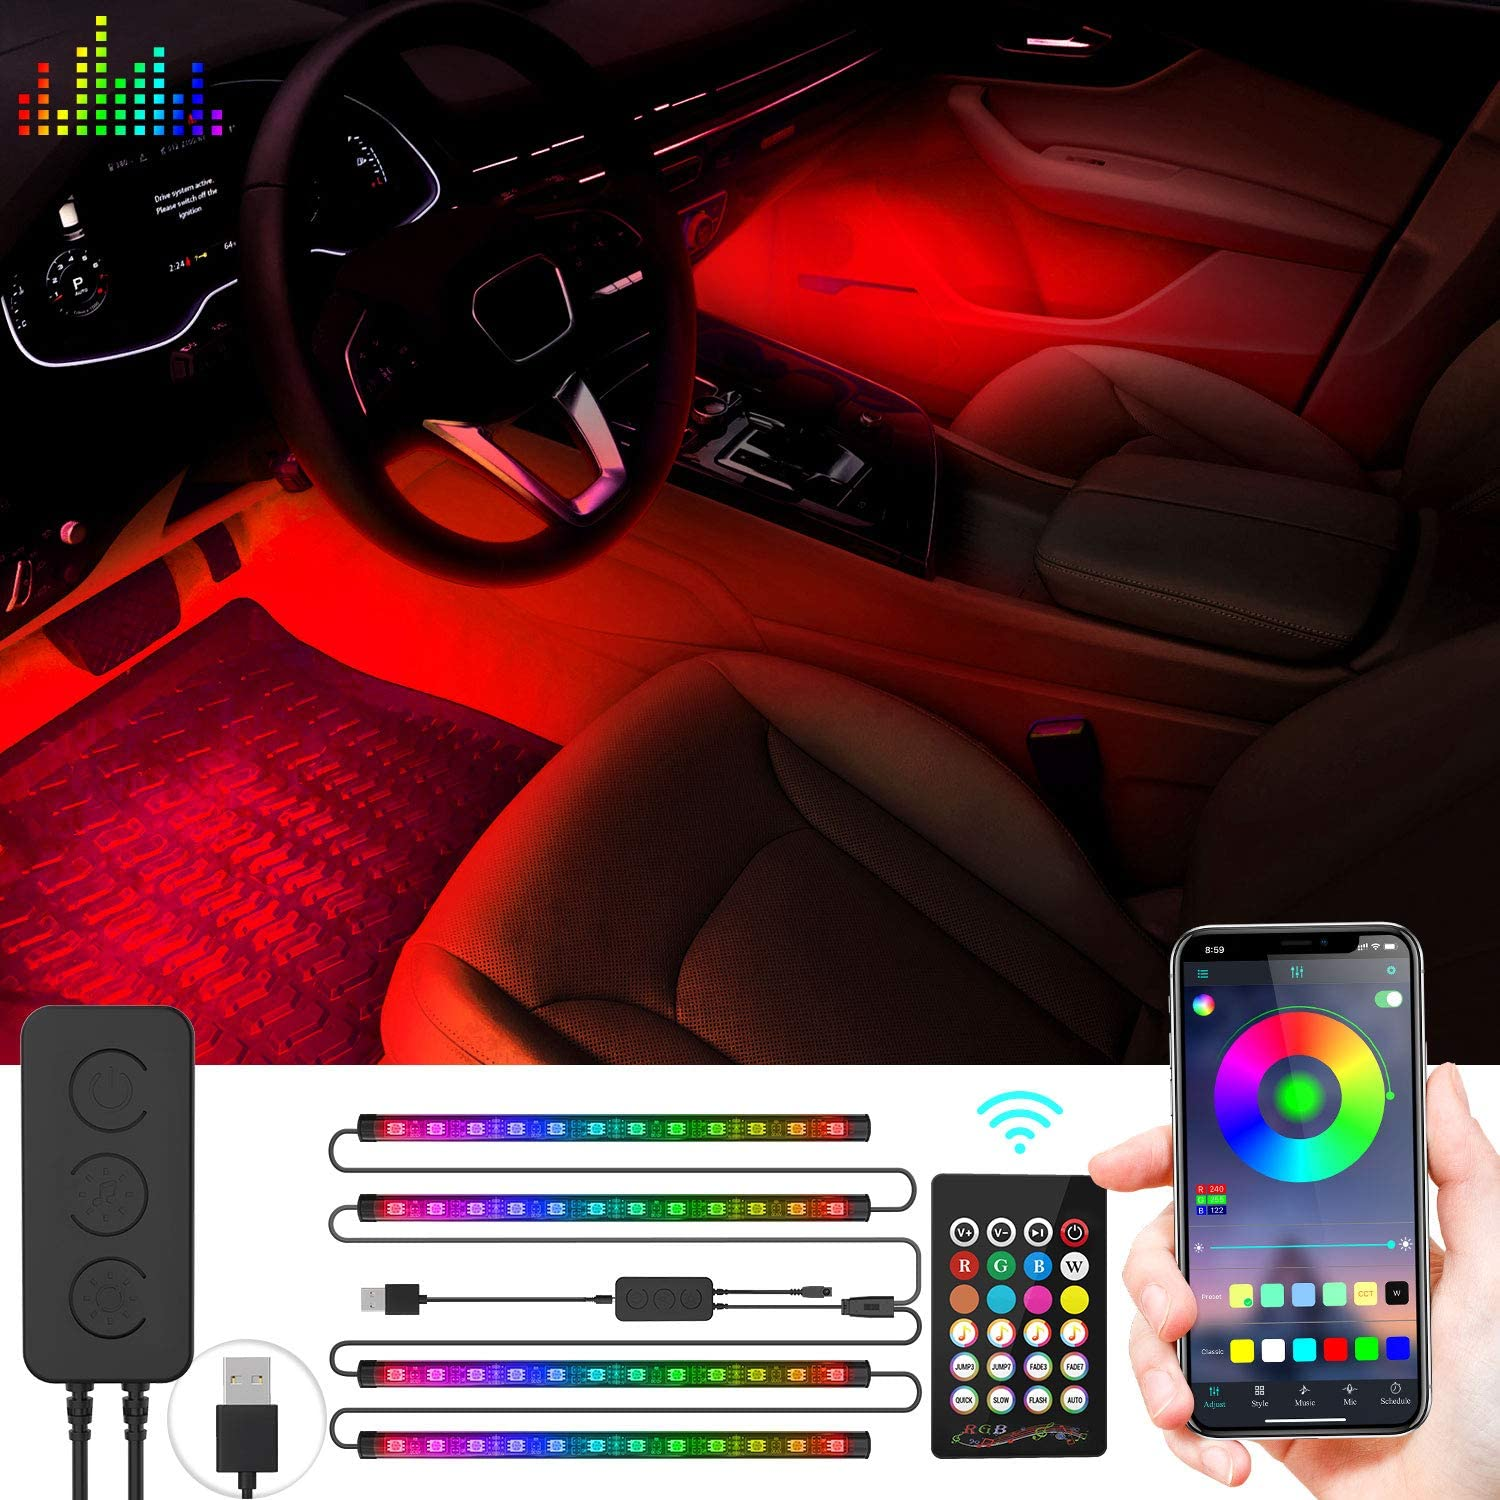 WEISIJI Car LED Strip Light, Multi DIY Color Music Waterproof Under Dash Lighting Kits,APP Controller with USB Charge Port for Home Decoration Car Interior Lights